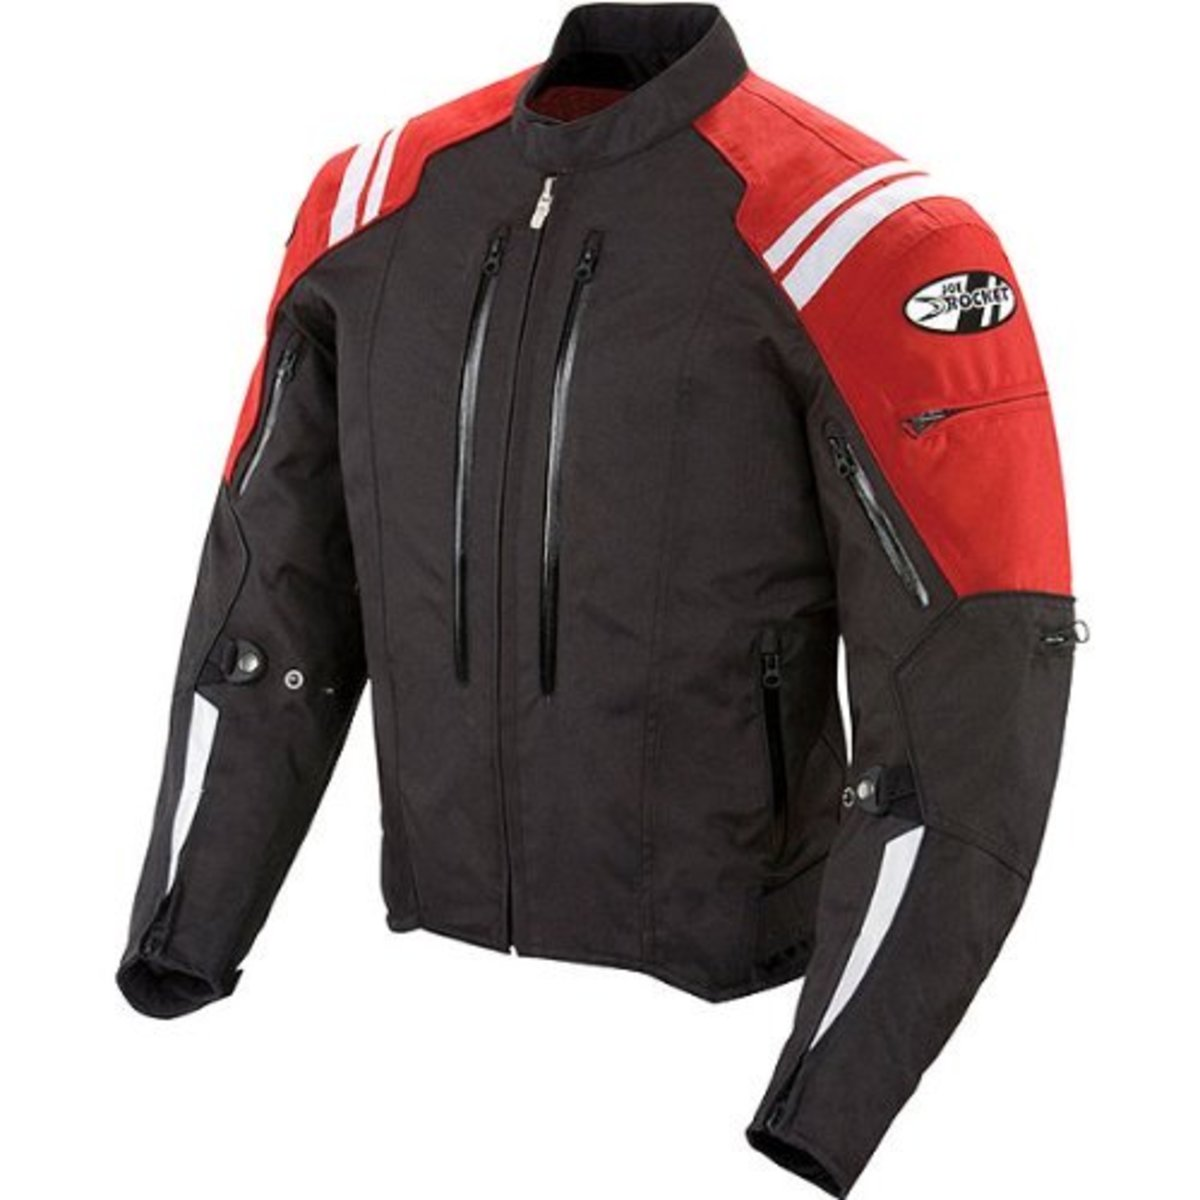 Cheap and Best Motorcycle Jackets For Men